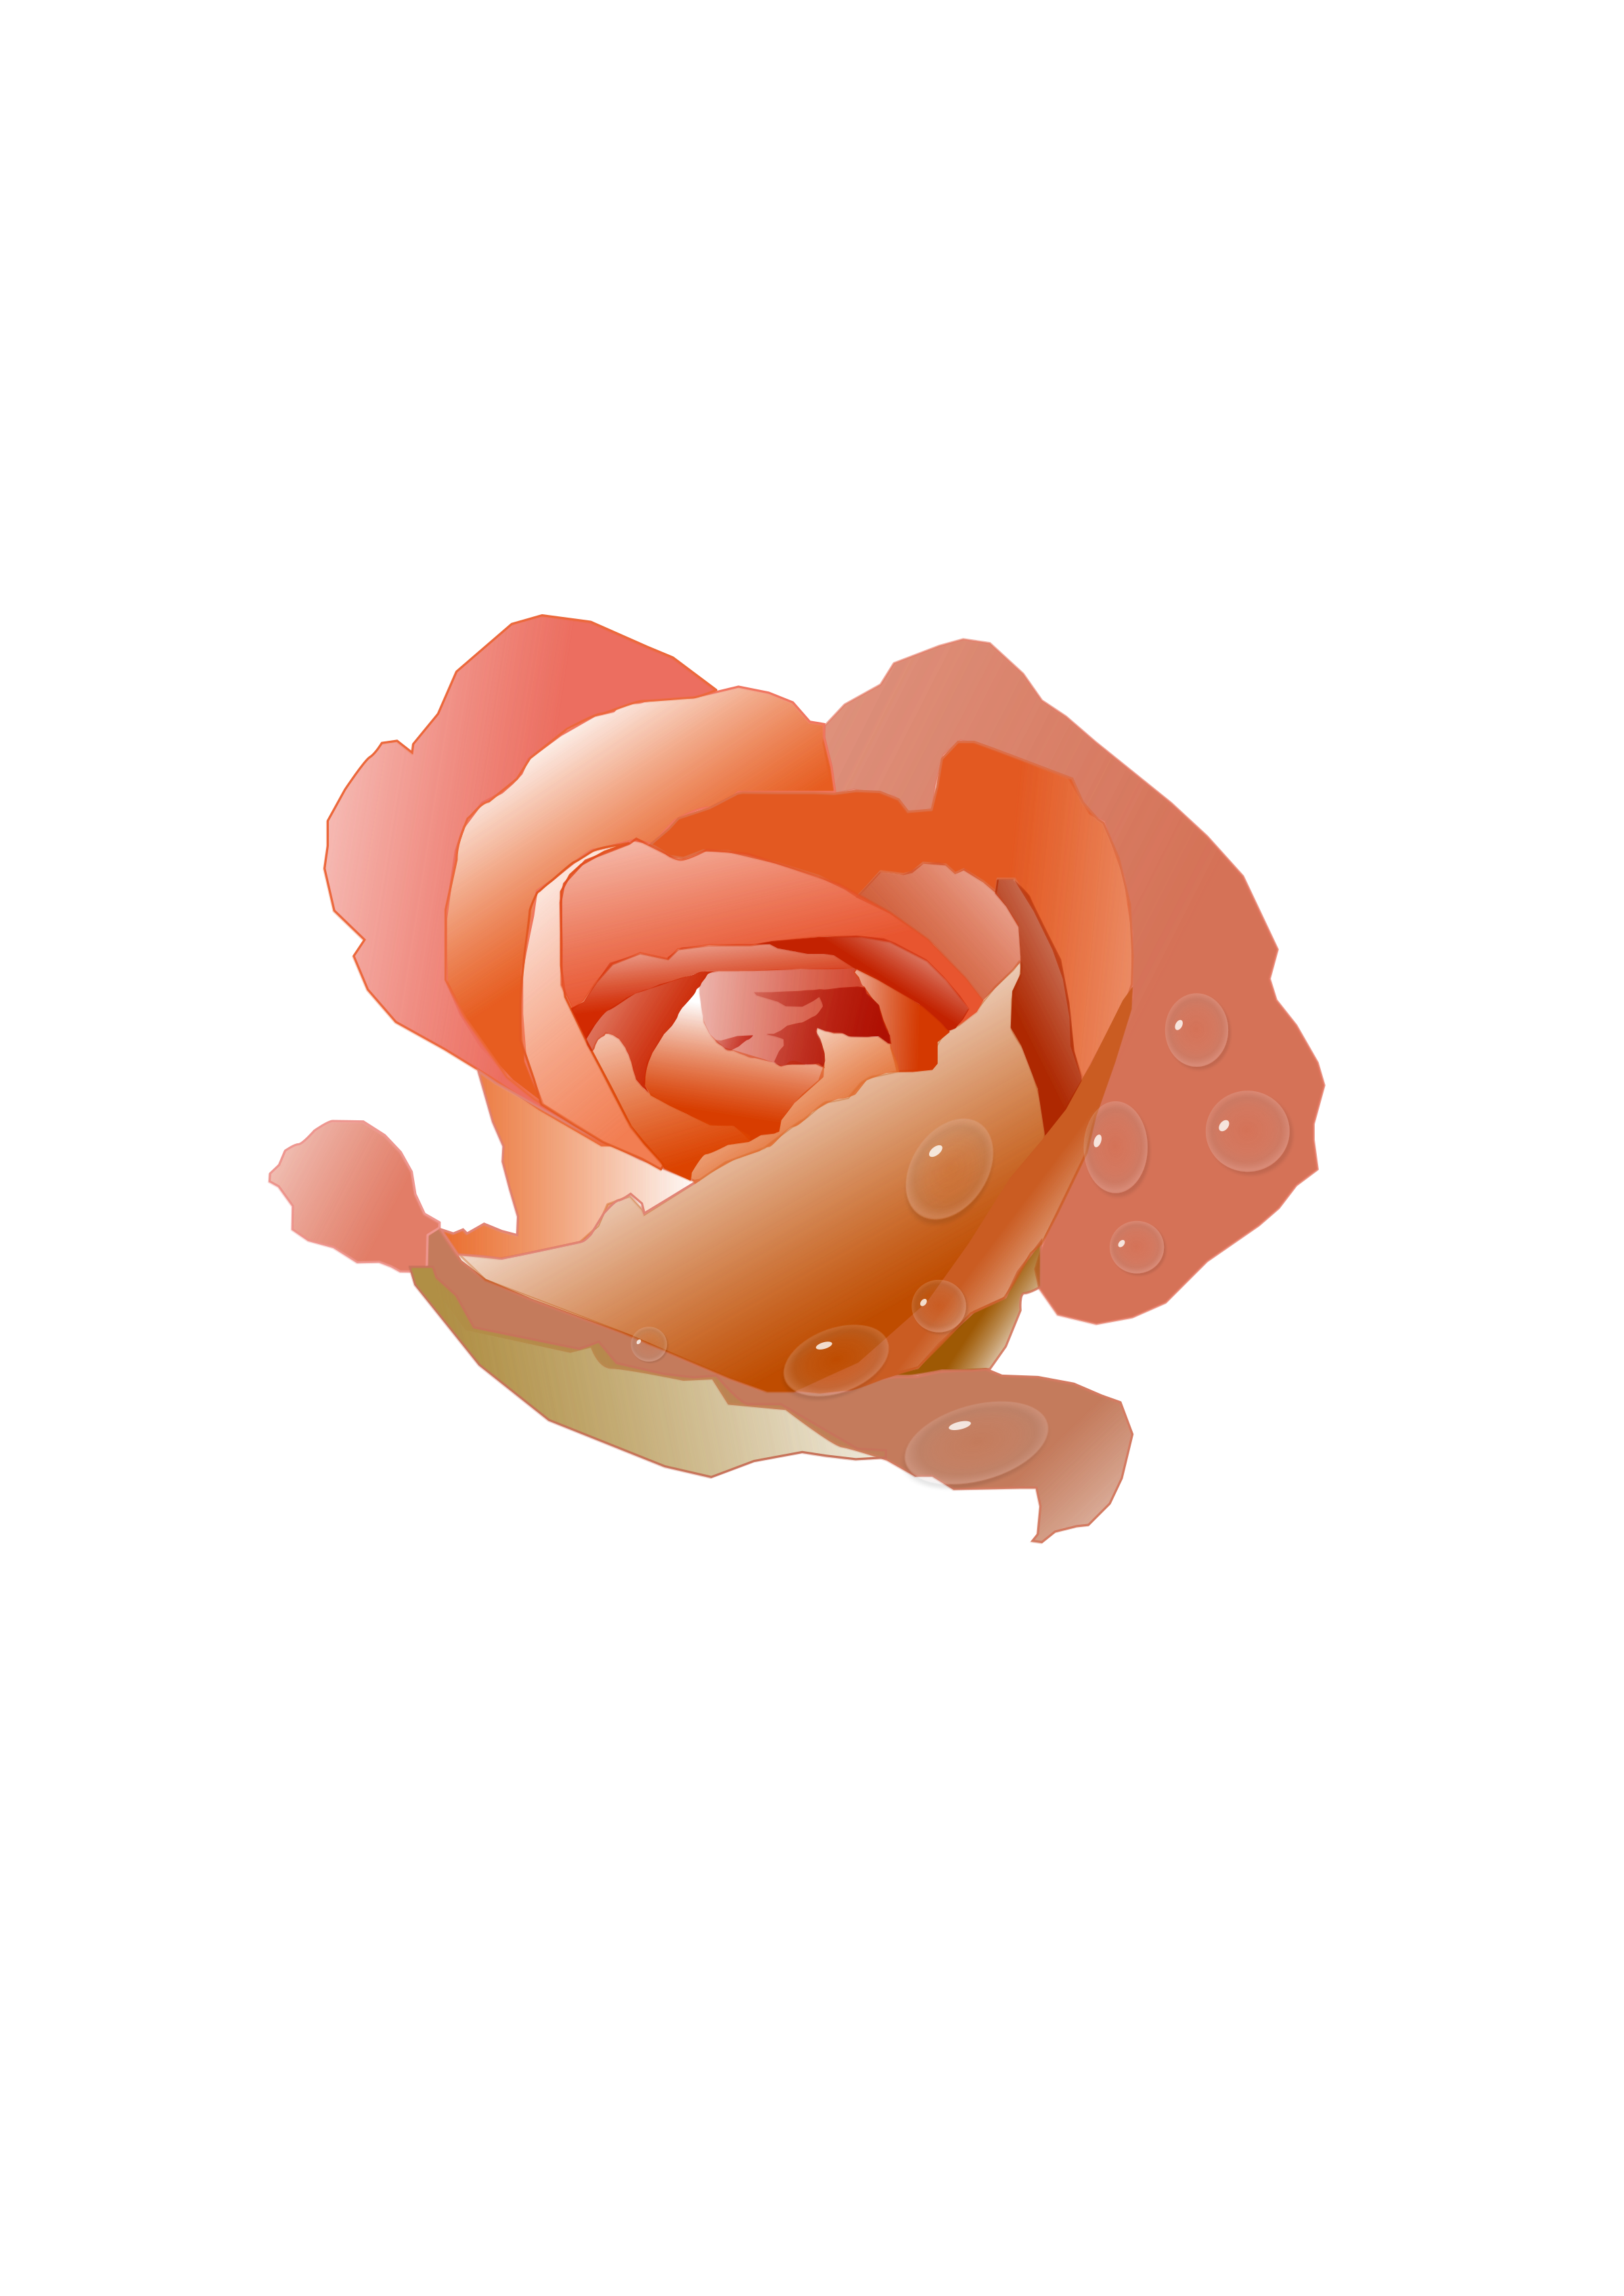 Rose with Drops by Funcky Jack